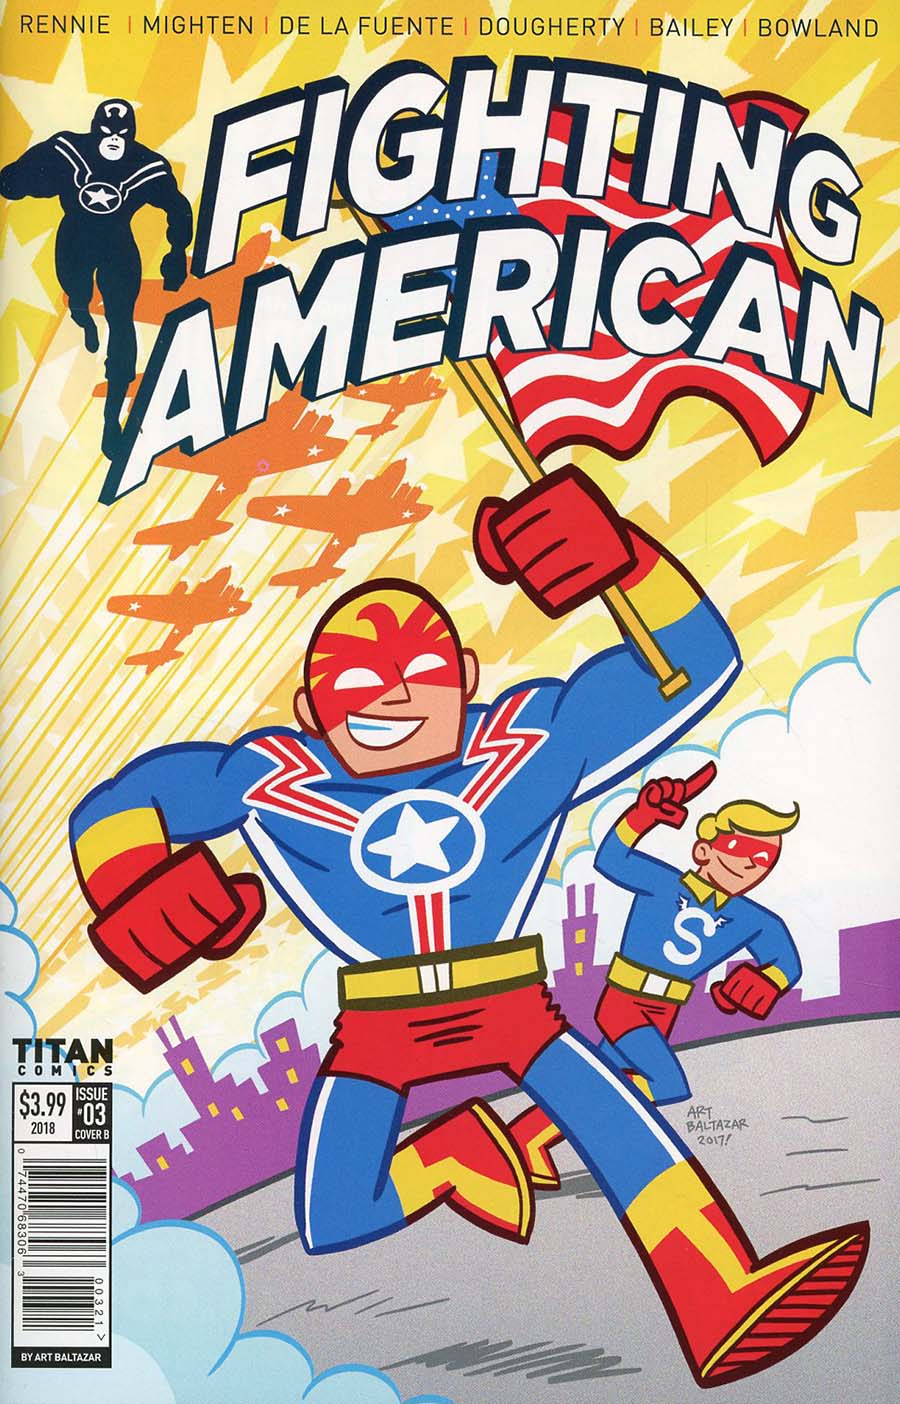 Fighting American Vol 4 #3 Cover B Variant Art Balthazar Cover